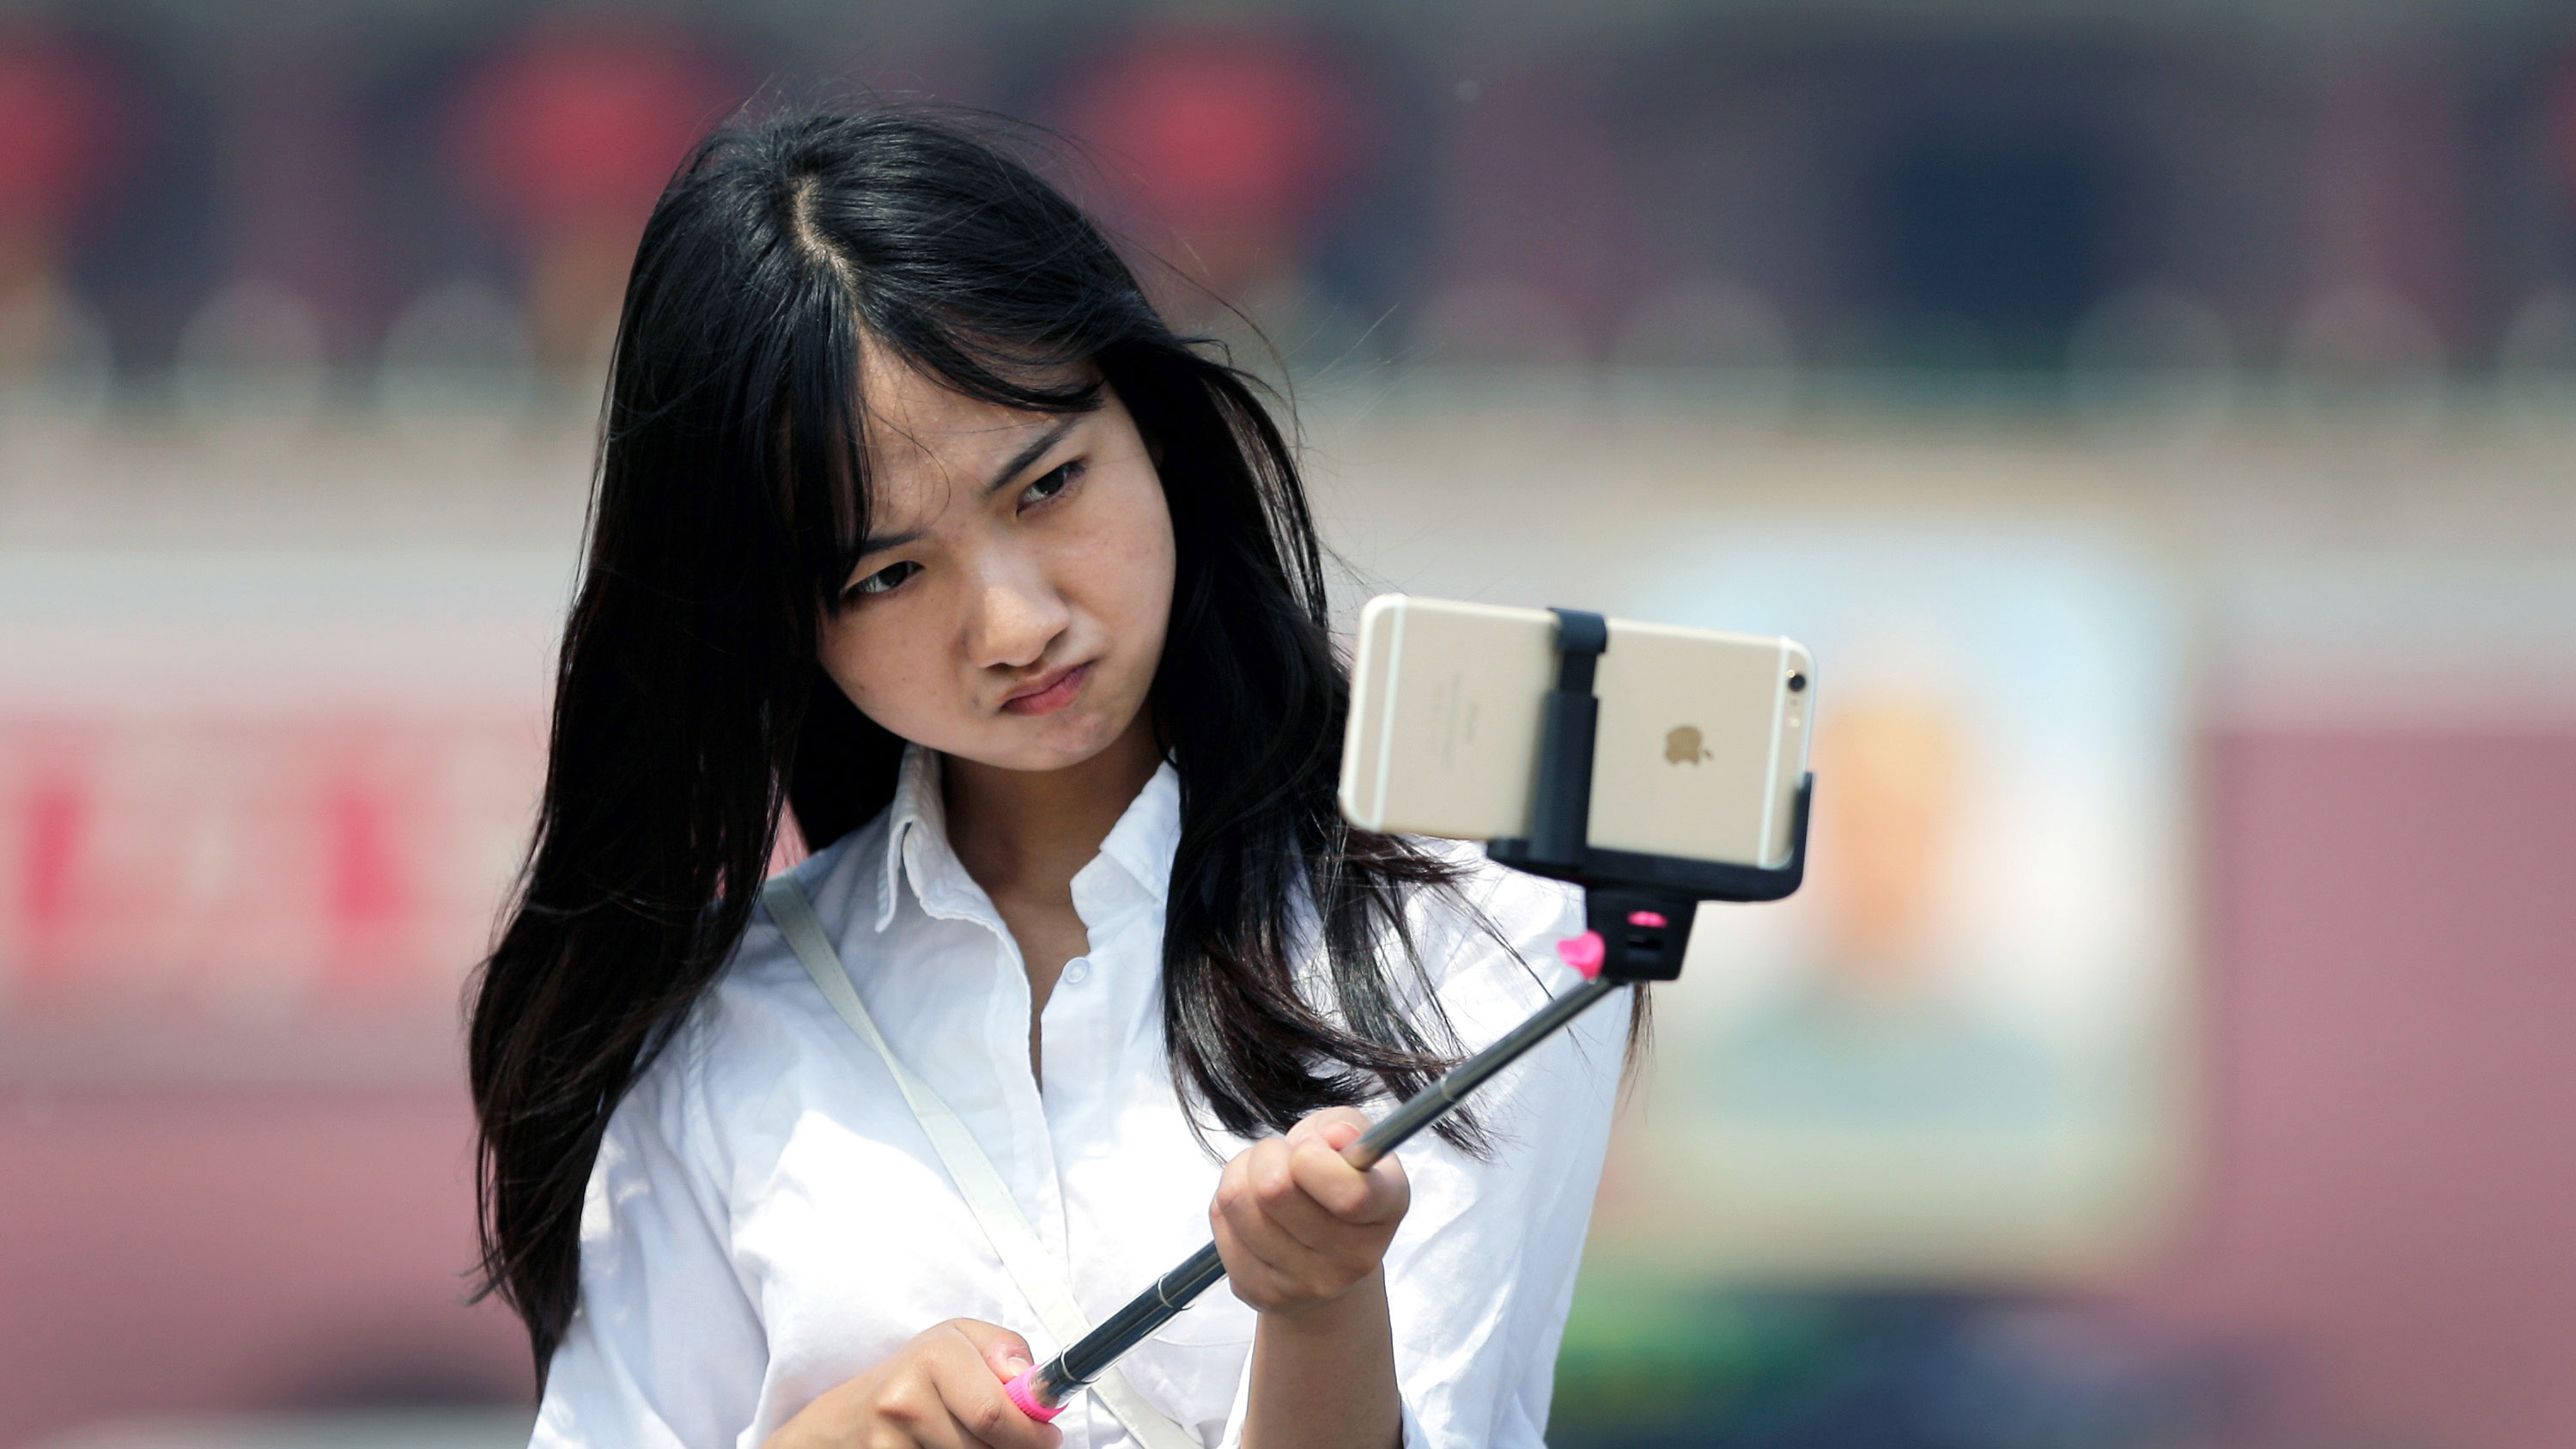 A woman reacts as she uses a selfie stick to take a photo of herself at Tiananmen Square in Beijing, China, Thursday, April 30, 2015. Selfie sticks are gaining popular in China, and many people are using them at popular tourist destinations. (AP Photo/Andy Wong)